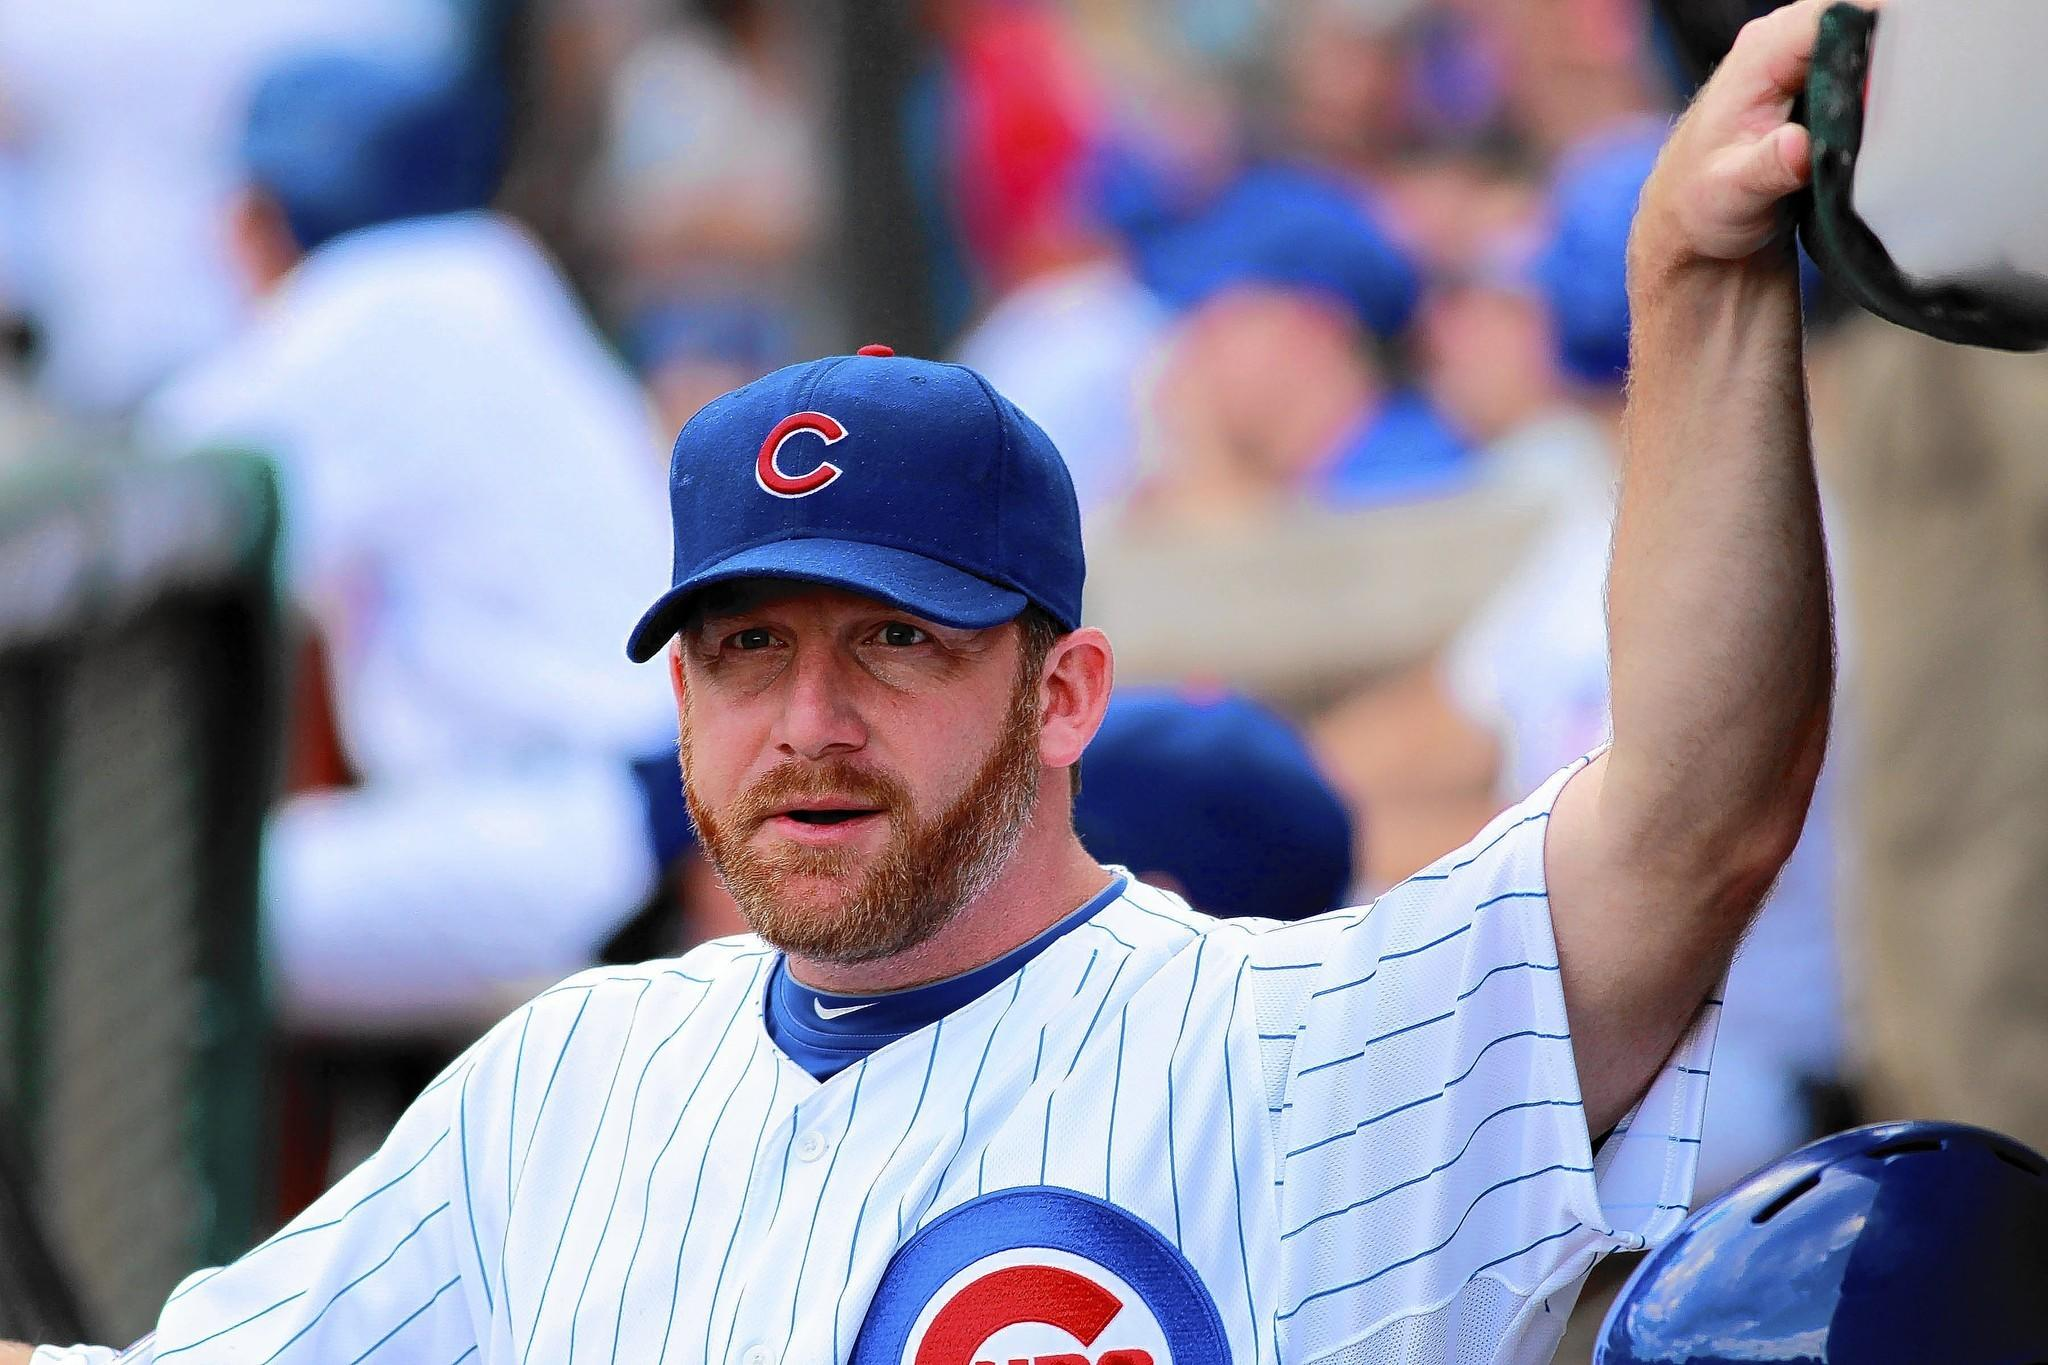 Ryan Dempster, who last pitched for the Cubs in 2012, is selling a home in Lakeview.